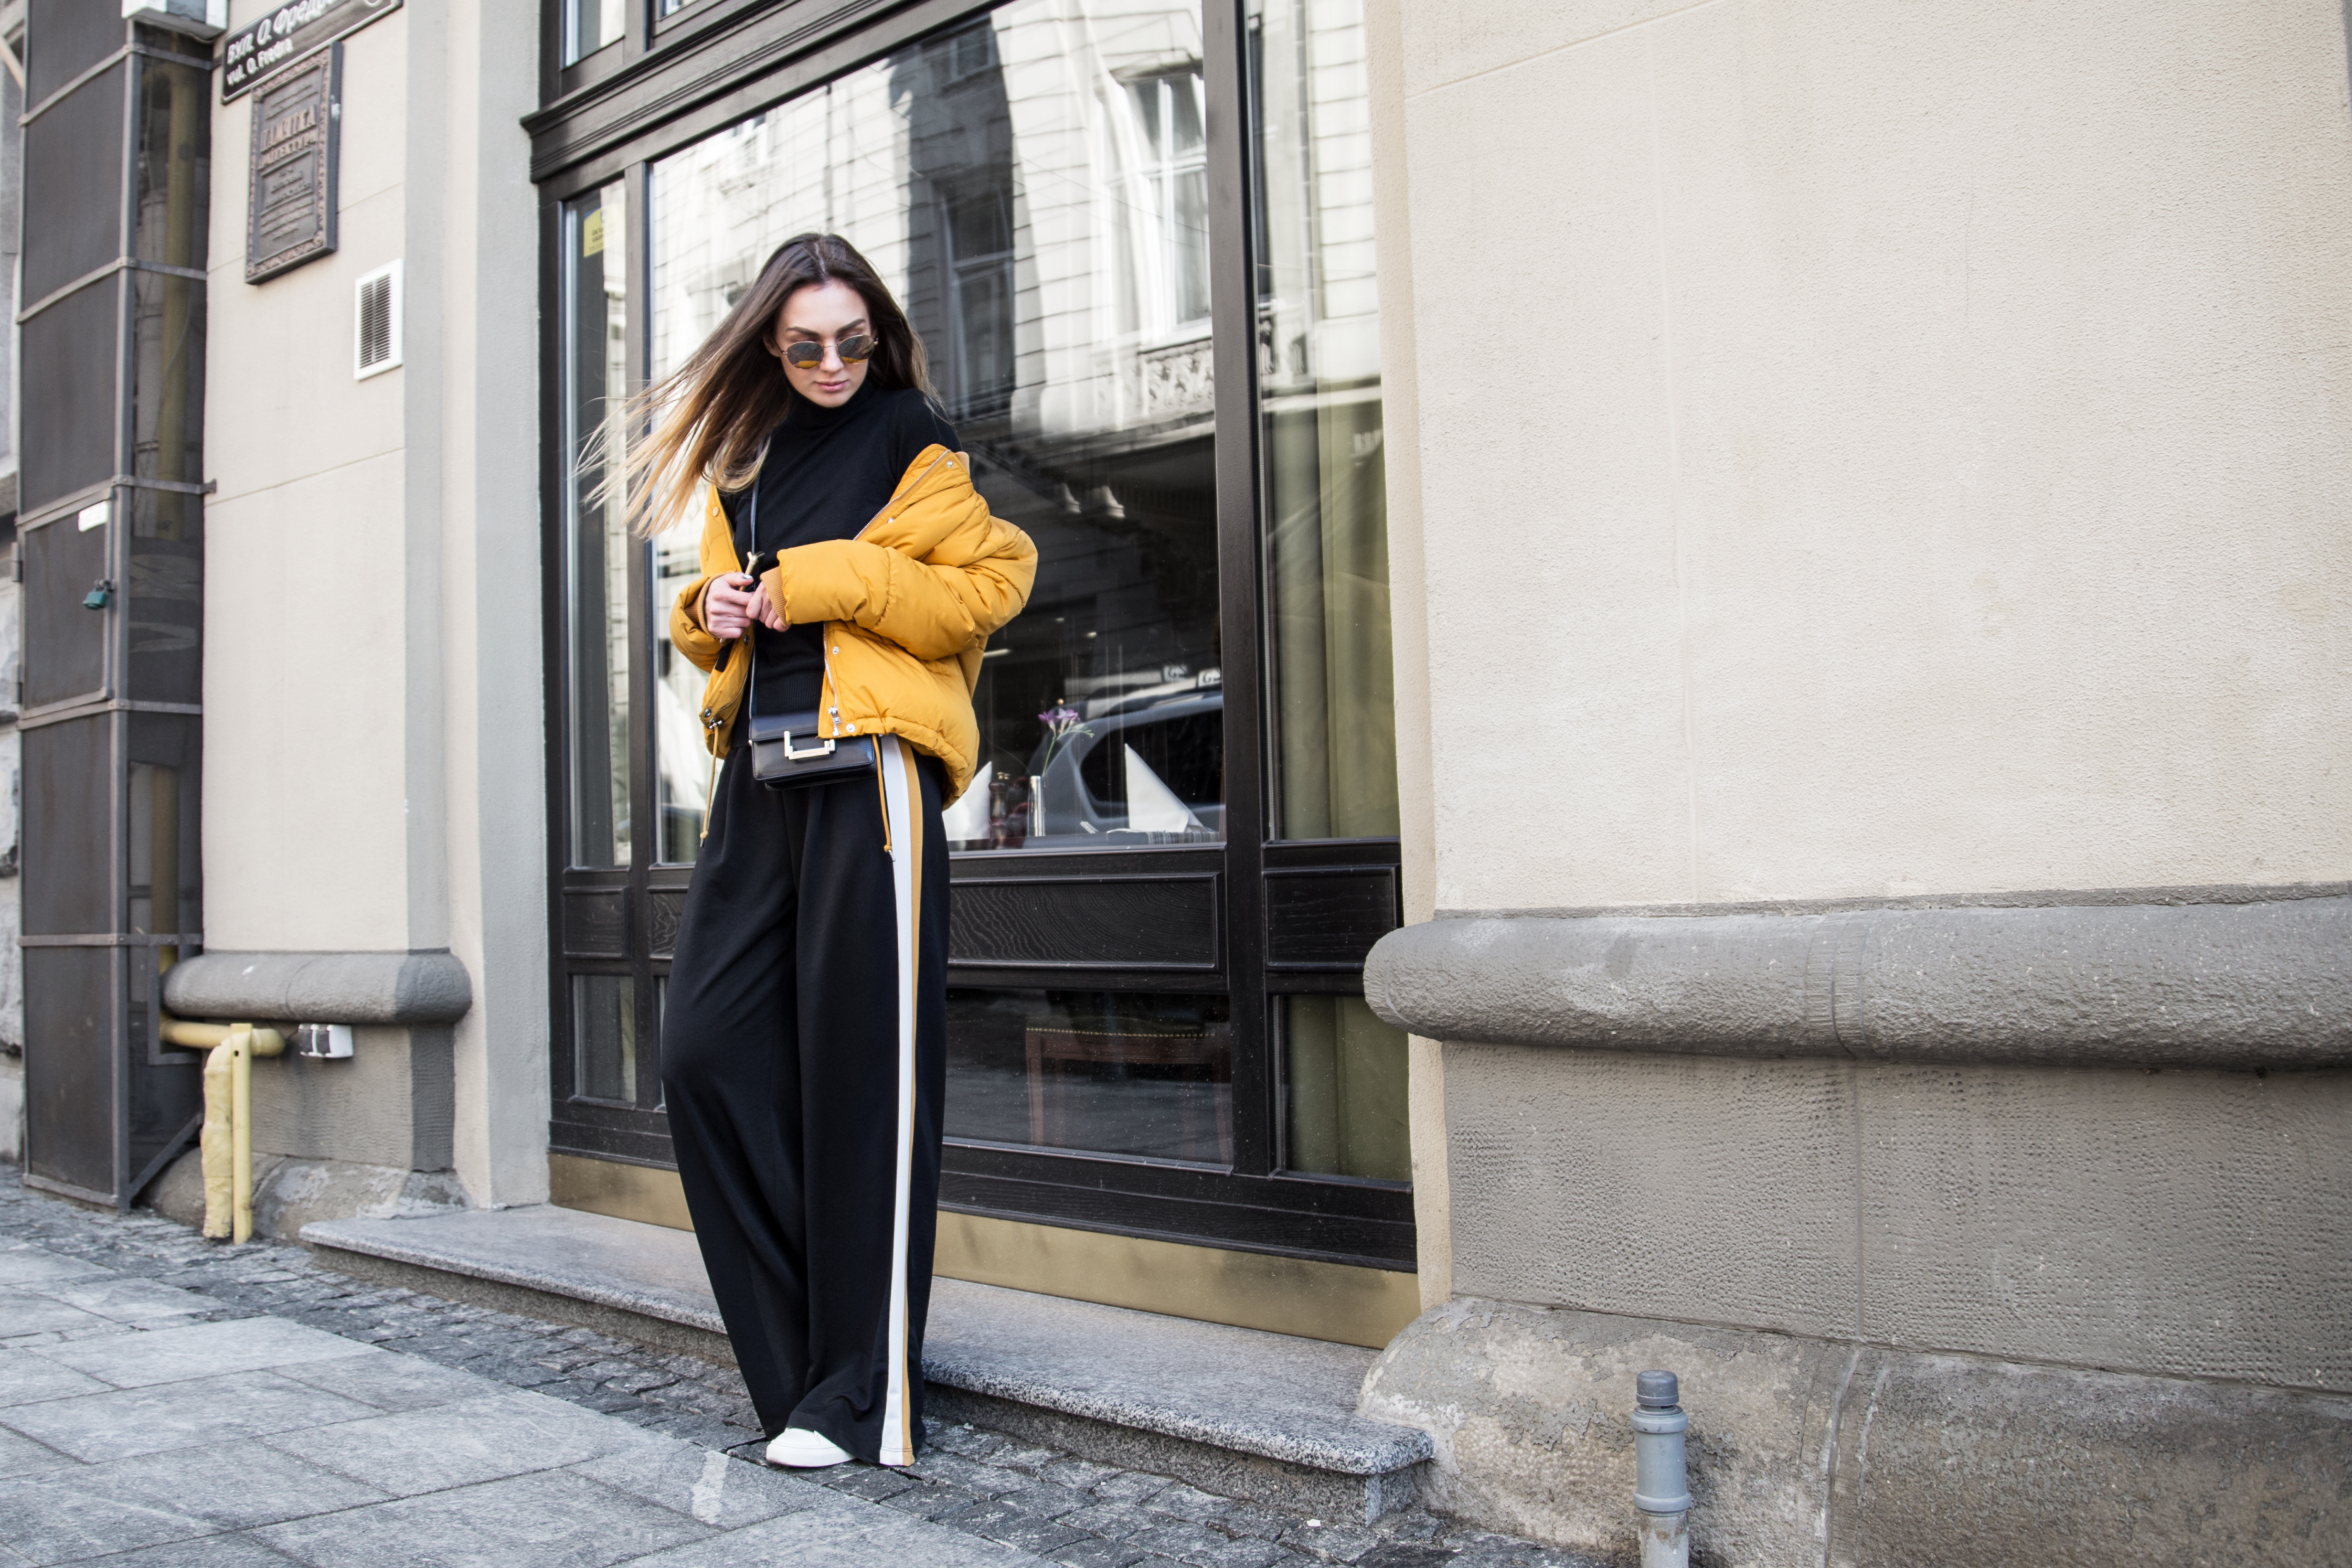 puffer-jacket-track-pants-outfit-street-look